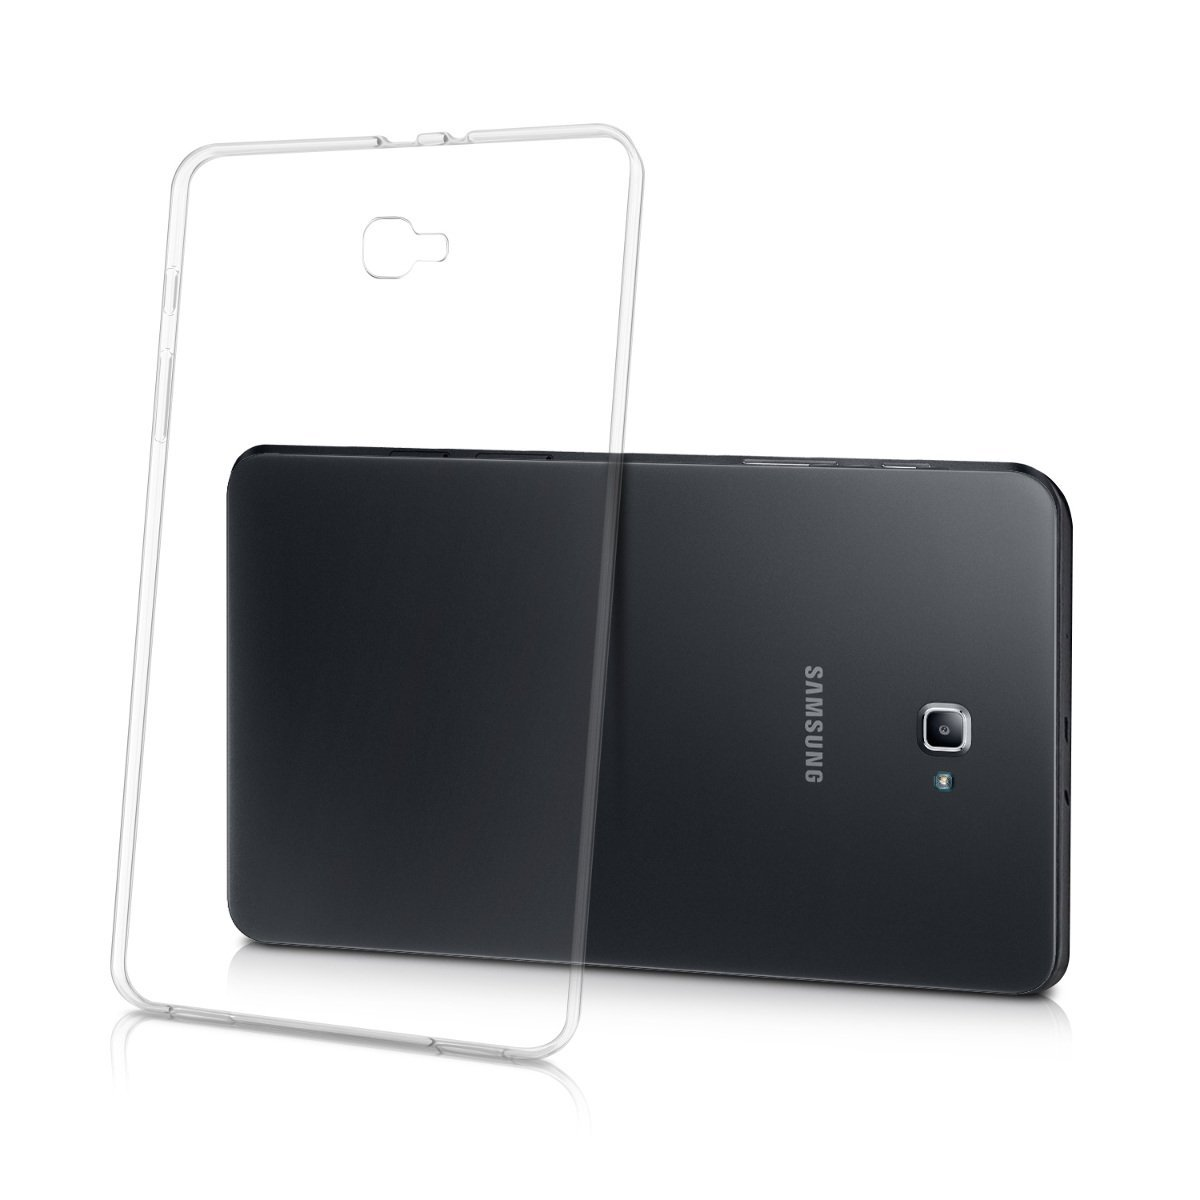 Crystal Case Soft Cover for Samsung Galaxy Tab A A6 10.1 2016 Case TPU Silicone Cover T580 T585 SM-T580 T585 Transparent Case flip cover pu leather case for samsung galaxy tab a a6 10 1 2016 t580 t585 sm t585 tablet case blue soft tpu back